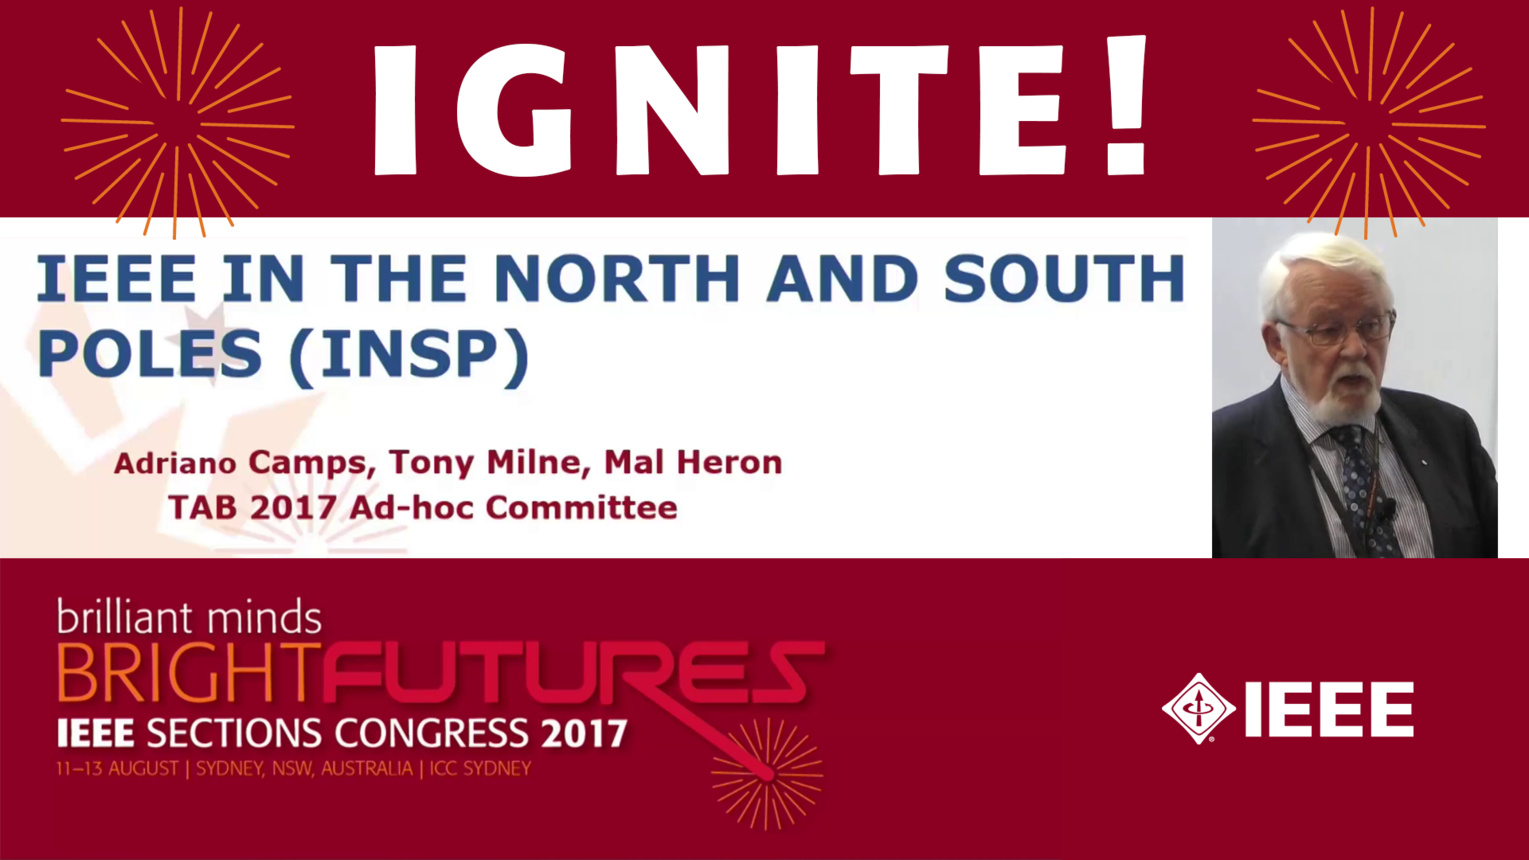 IEEE in the North and South Poles (INSP) - Tony Milne - Ignite: Sections Congress 2017